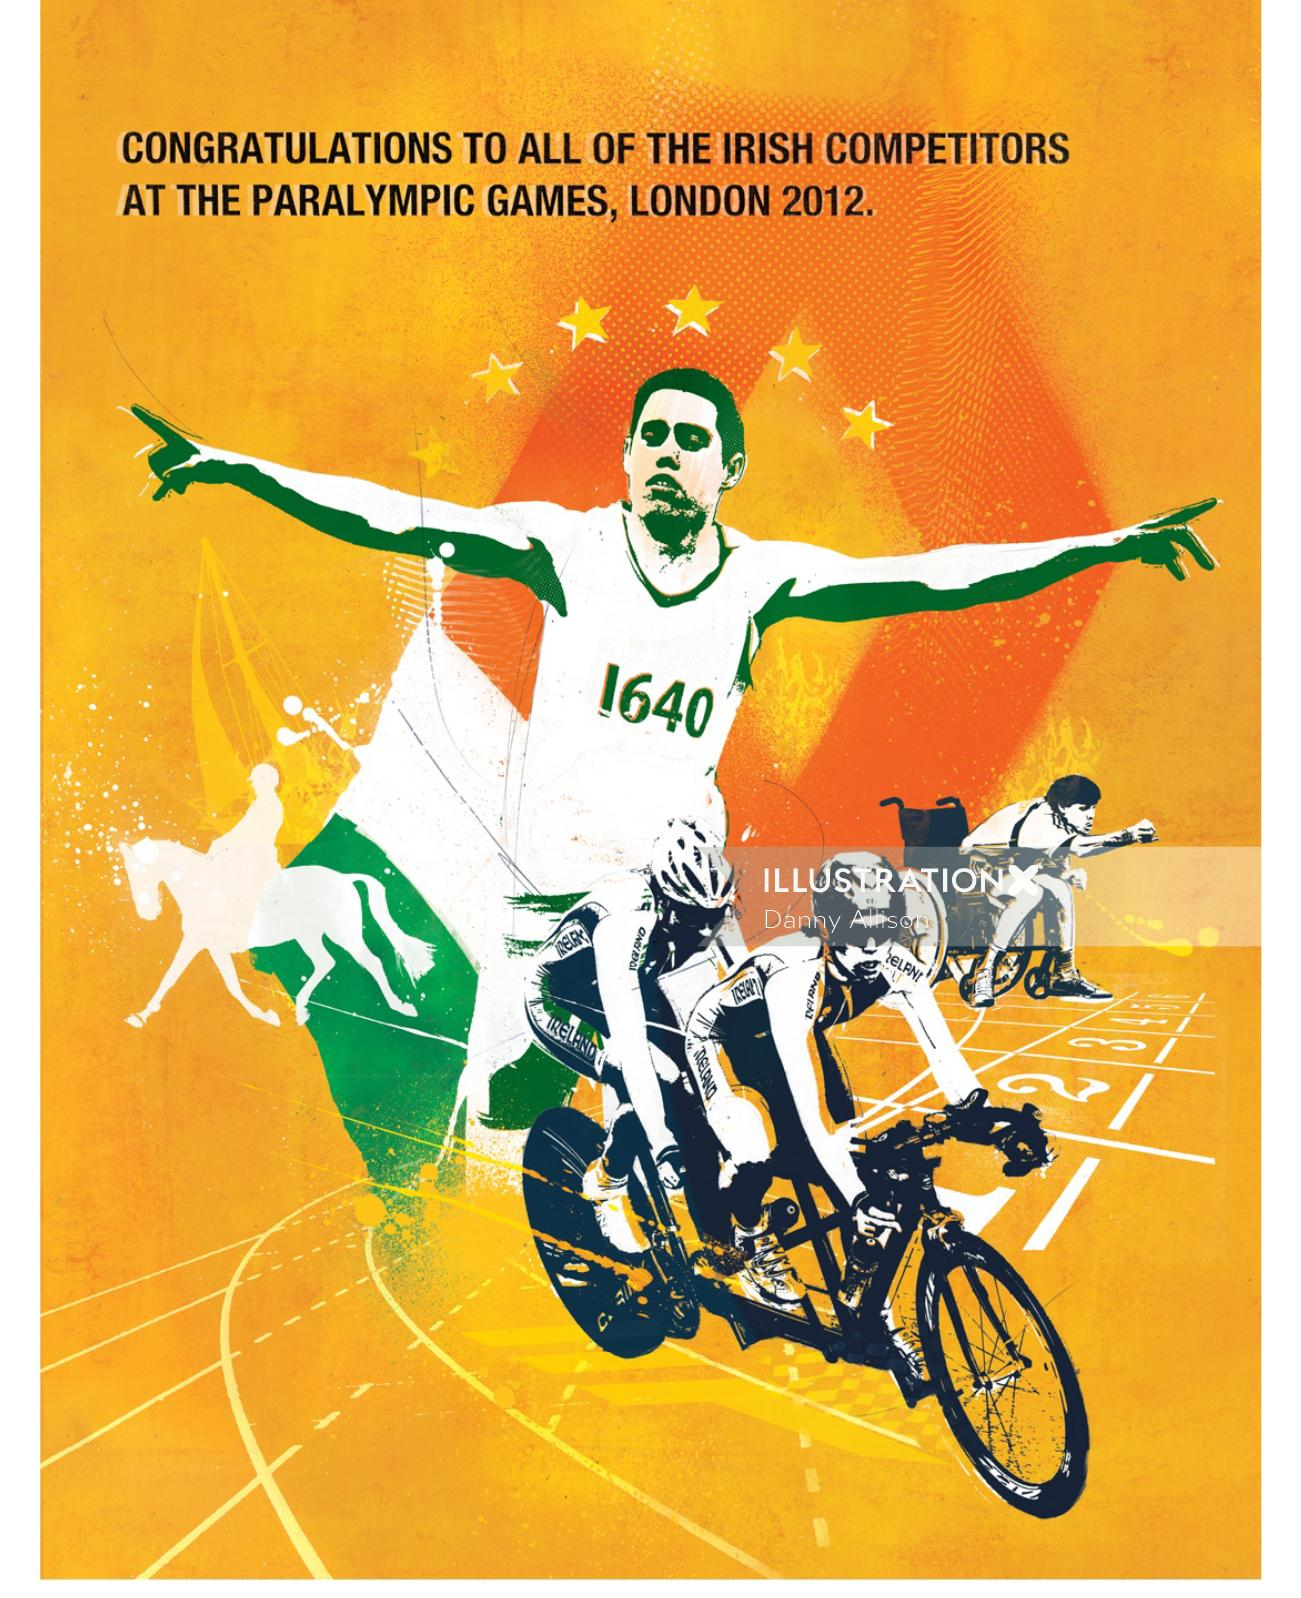 london, paralympics, disability, advertising, sport, Olympics, Cycling, FLags in the background